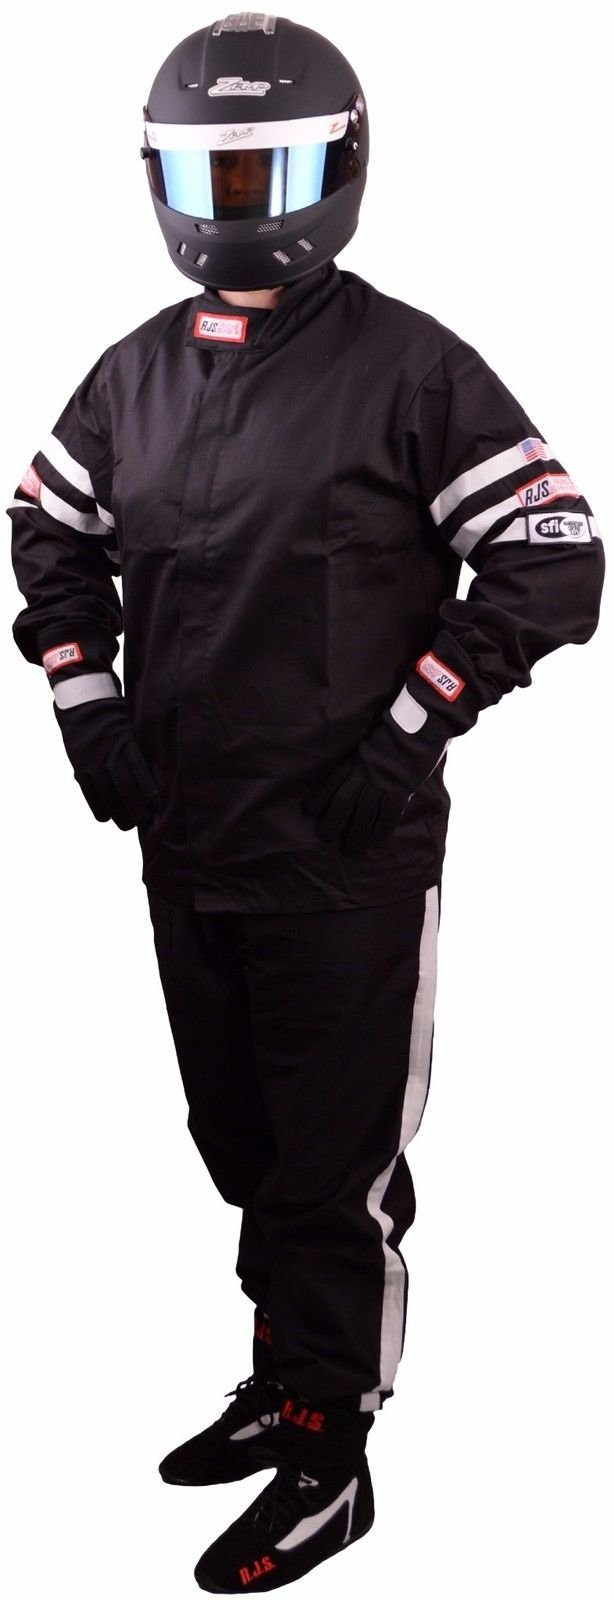 RJS Racing FIRE Suit Racing Jacket & Pants Black/White Stripe Adult 3X SFI 3.2A/1